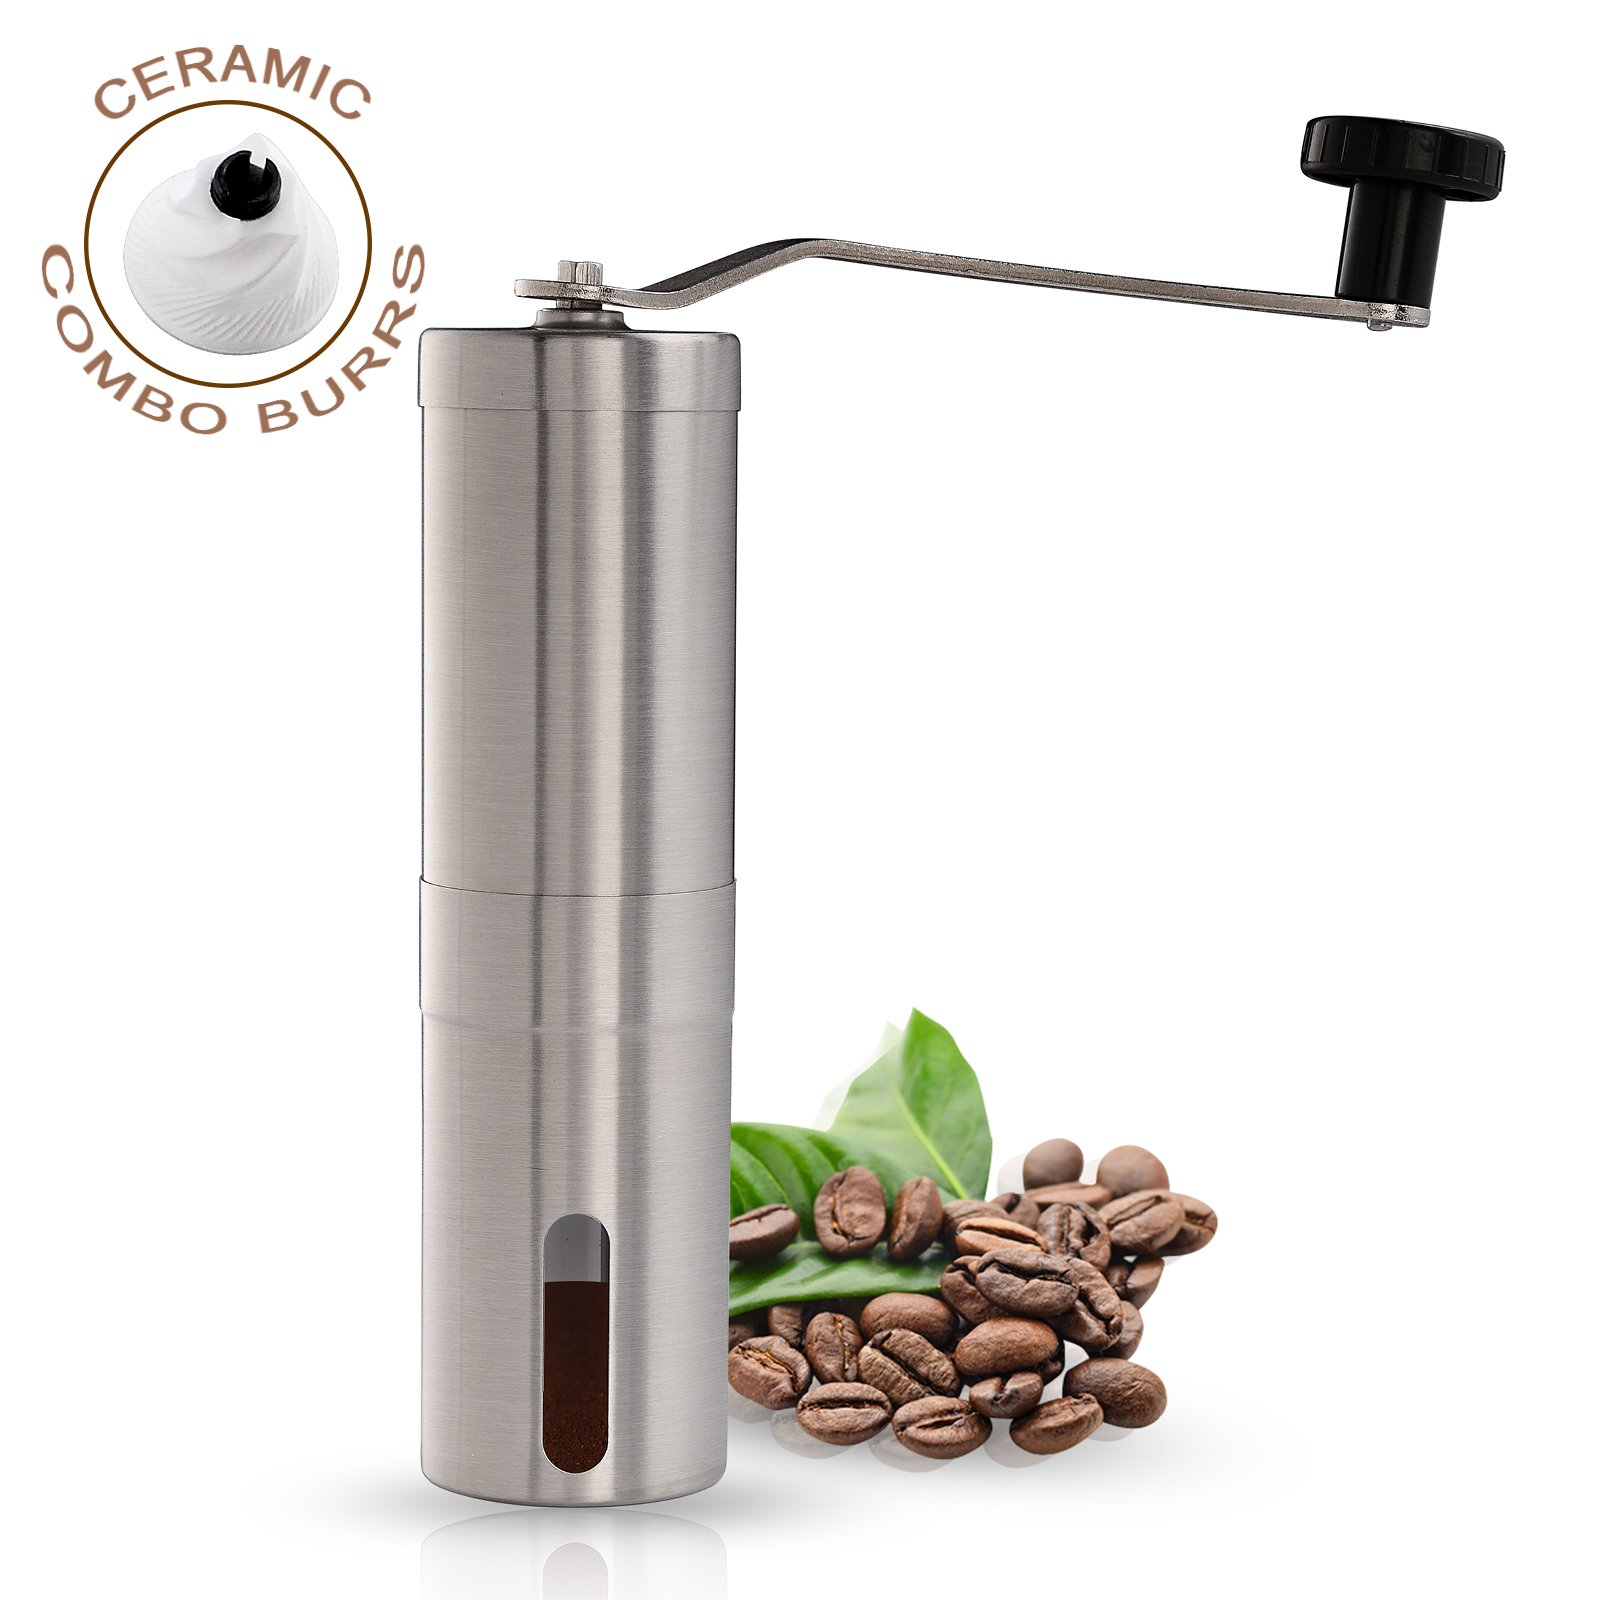 EIGSO Manual Coffee Grinder,Strongest and Heaviest Duty Portable Conical Burr Mill, Whole Bean Manual Coffee Grinder for French Press, Turkish, Handheld Mini, K Cup, Brushed Stainless Steel